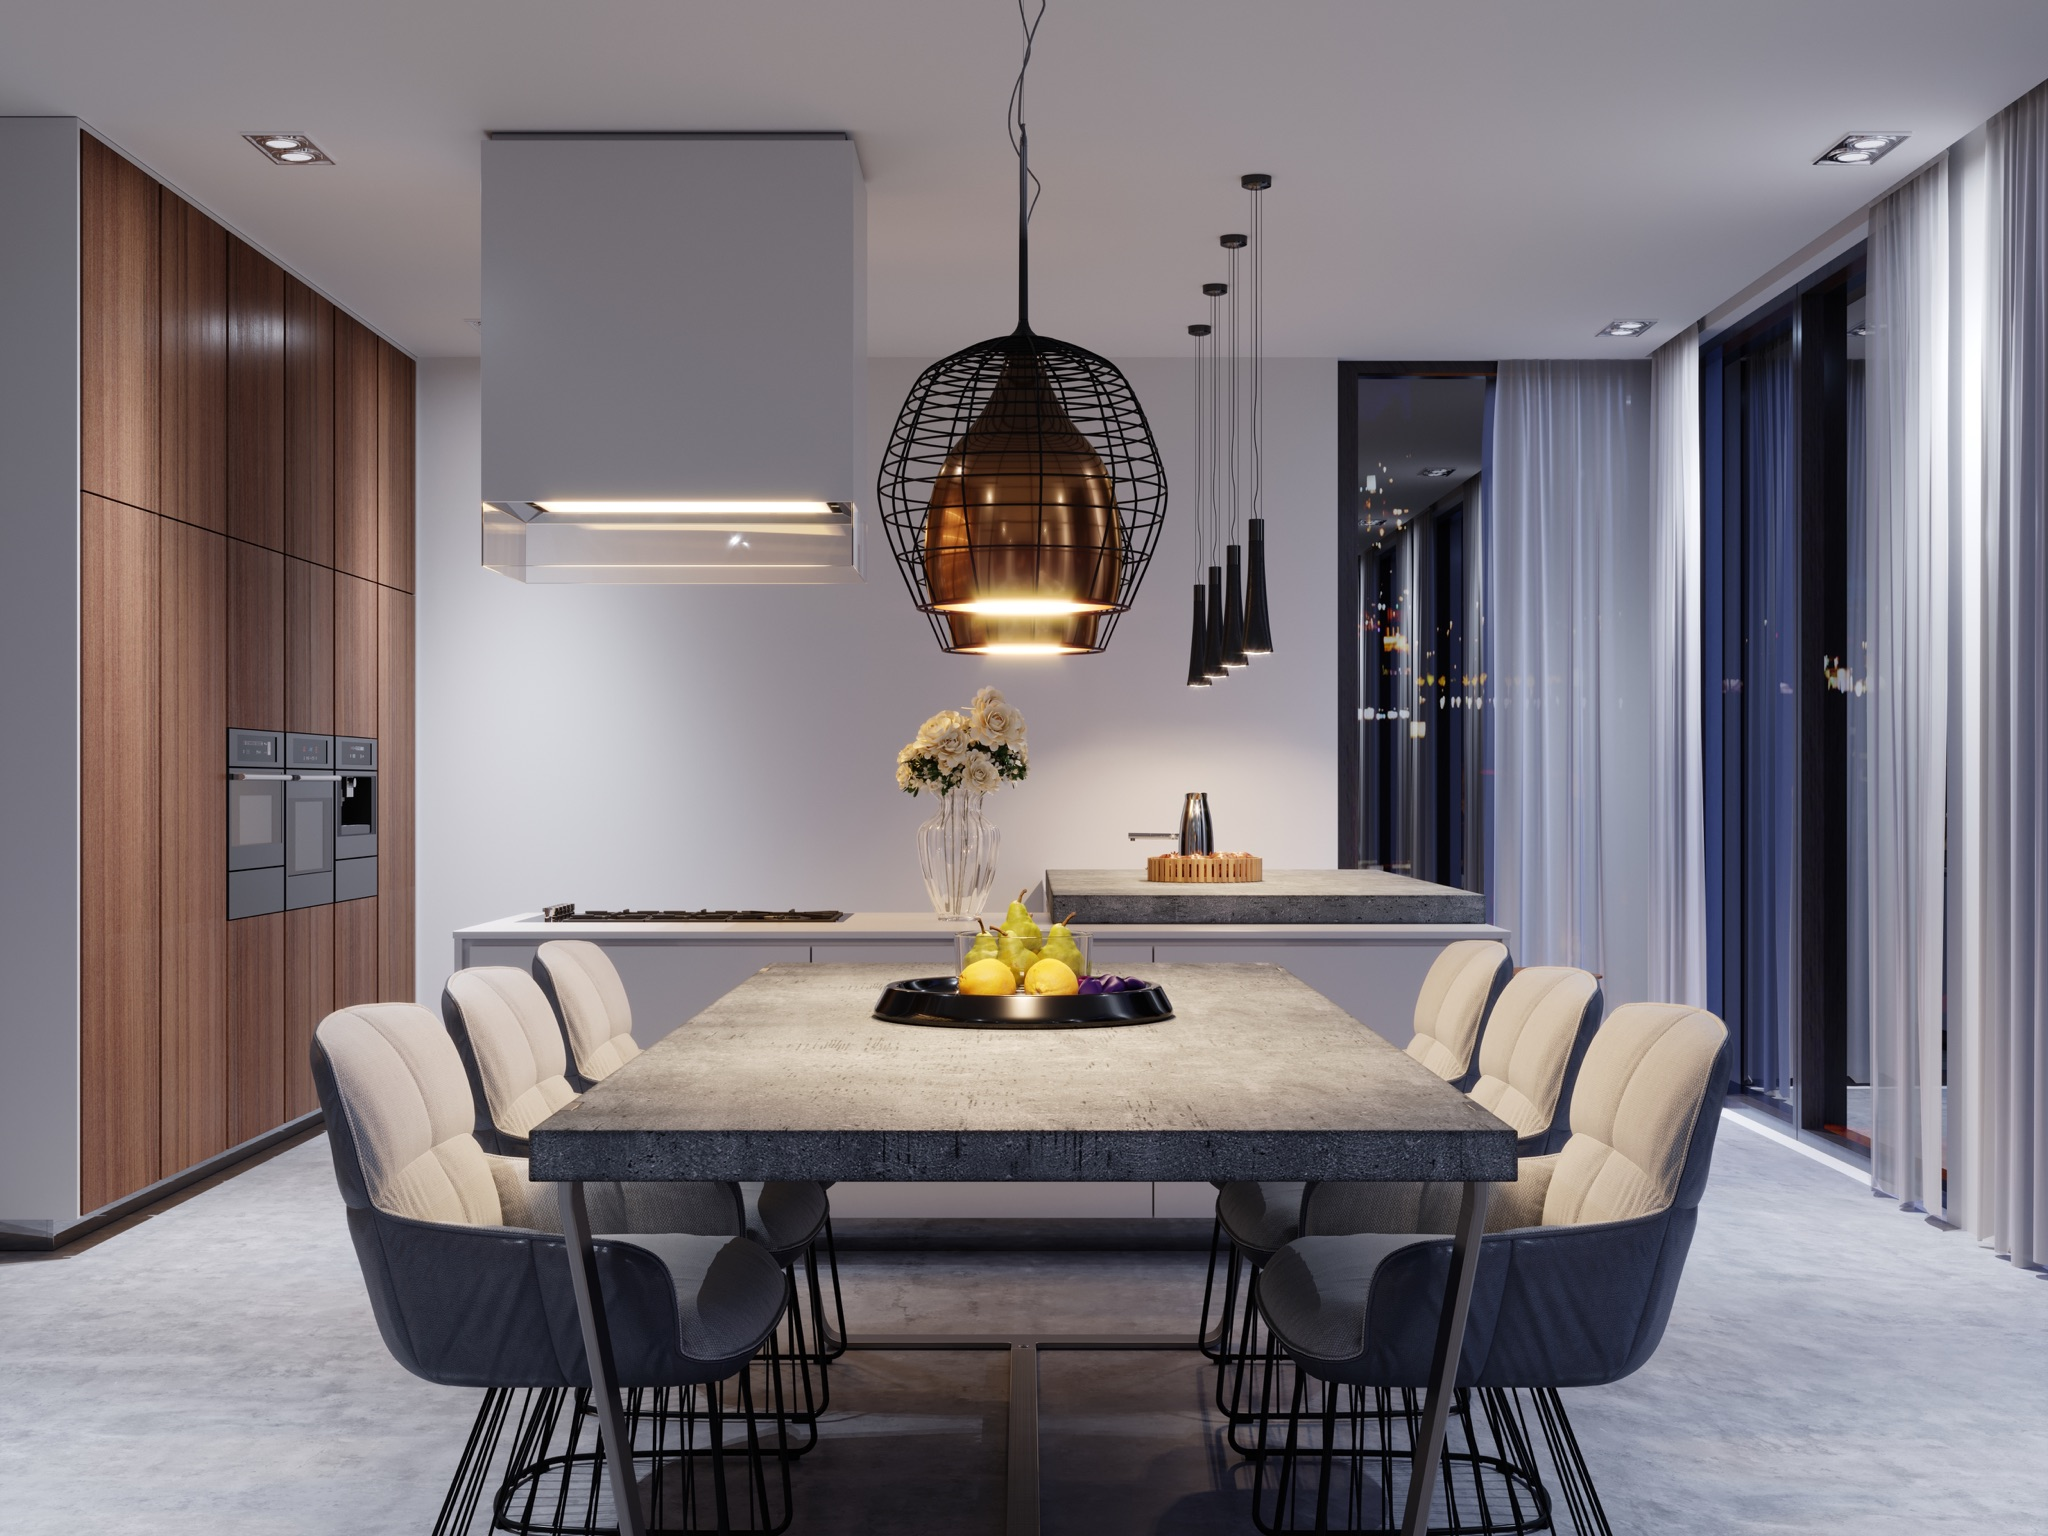 Concrete dining table and kitchen countertop in modern open kitchen featuring concrete floors, copper and black metal pendant lighting and sleek woodgrain modern cabinetry